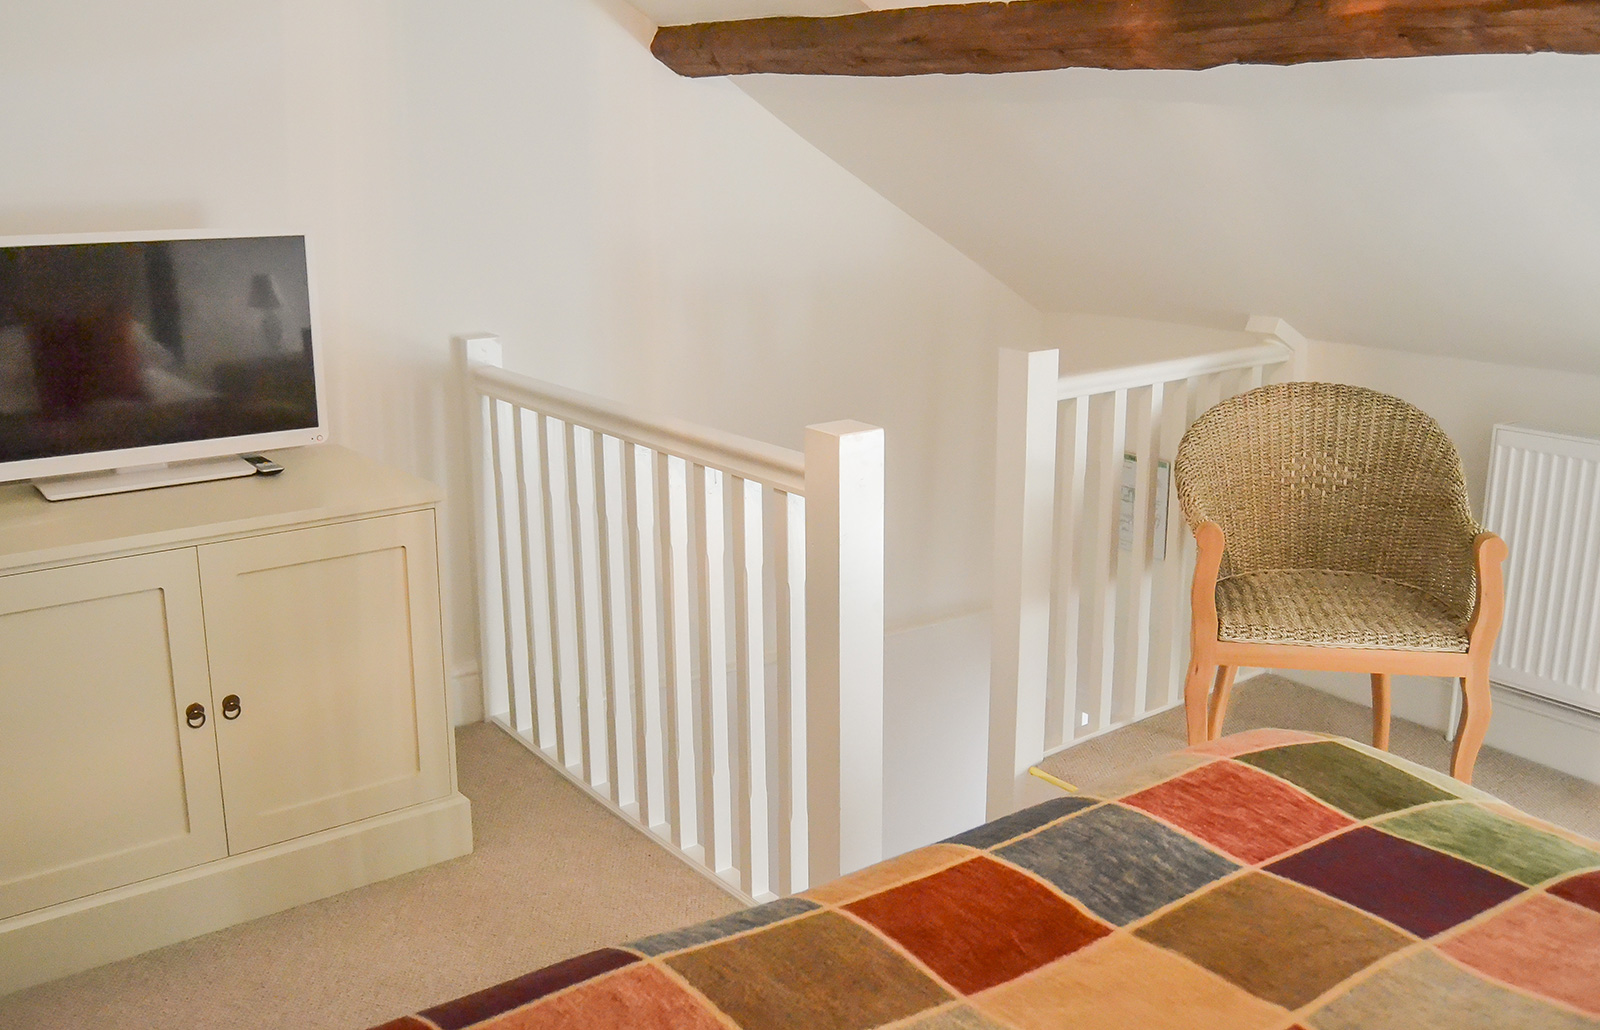 Hayloft-Room-Bed-Breakfast-Bang-in-Wells-Norfolk